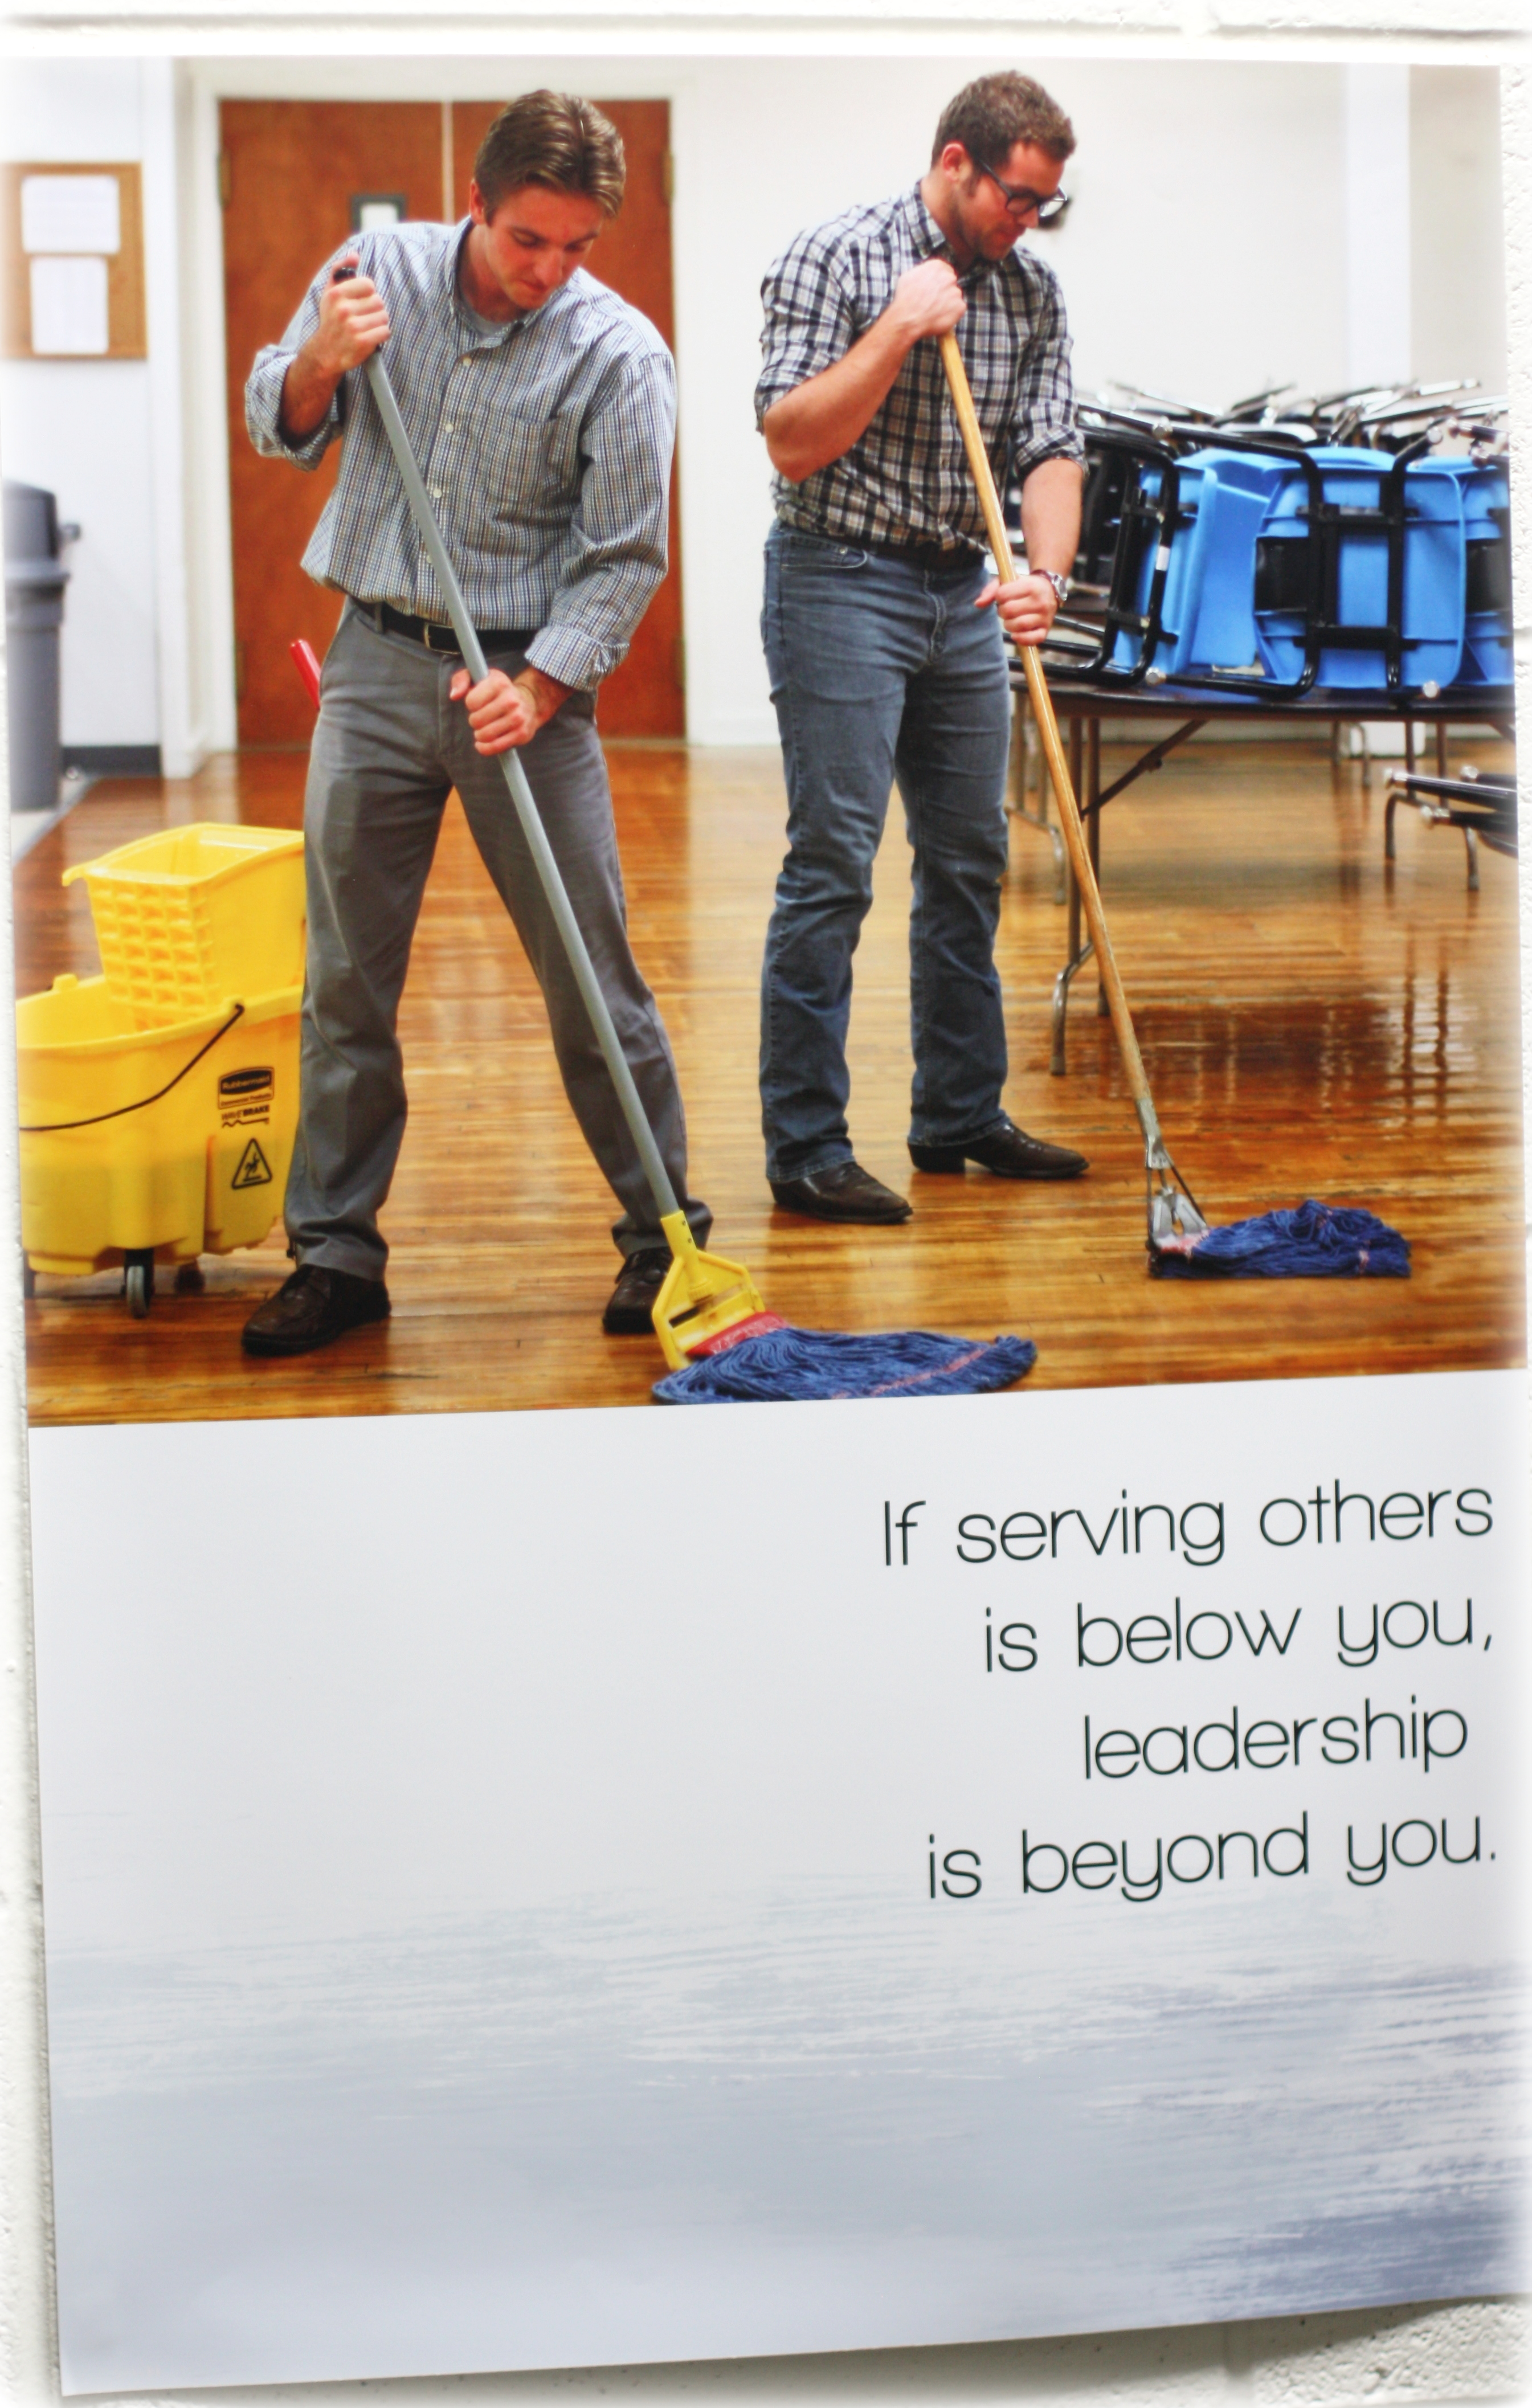 Mopping floors